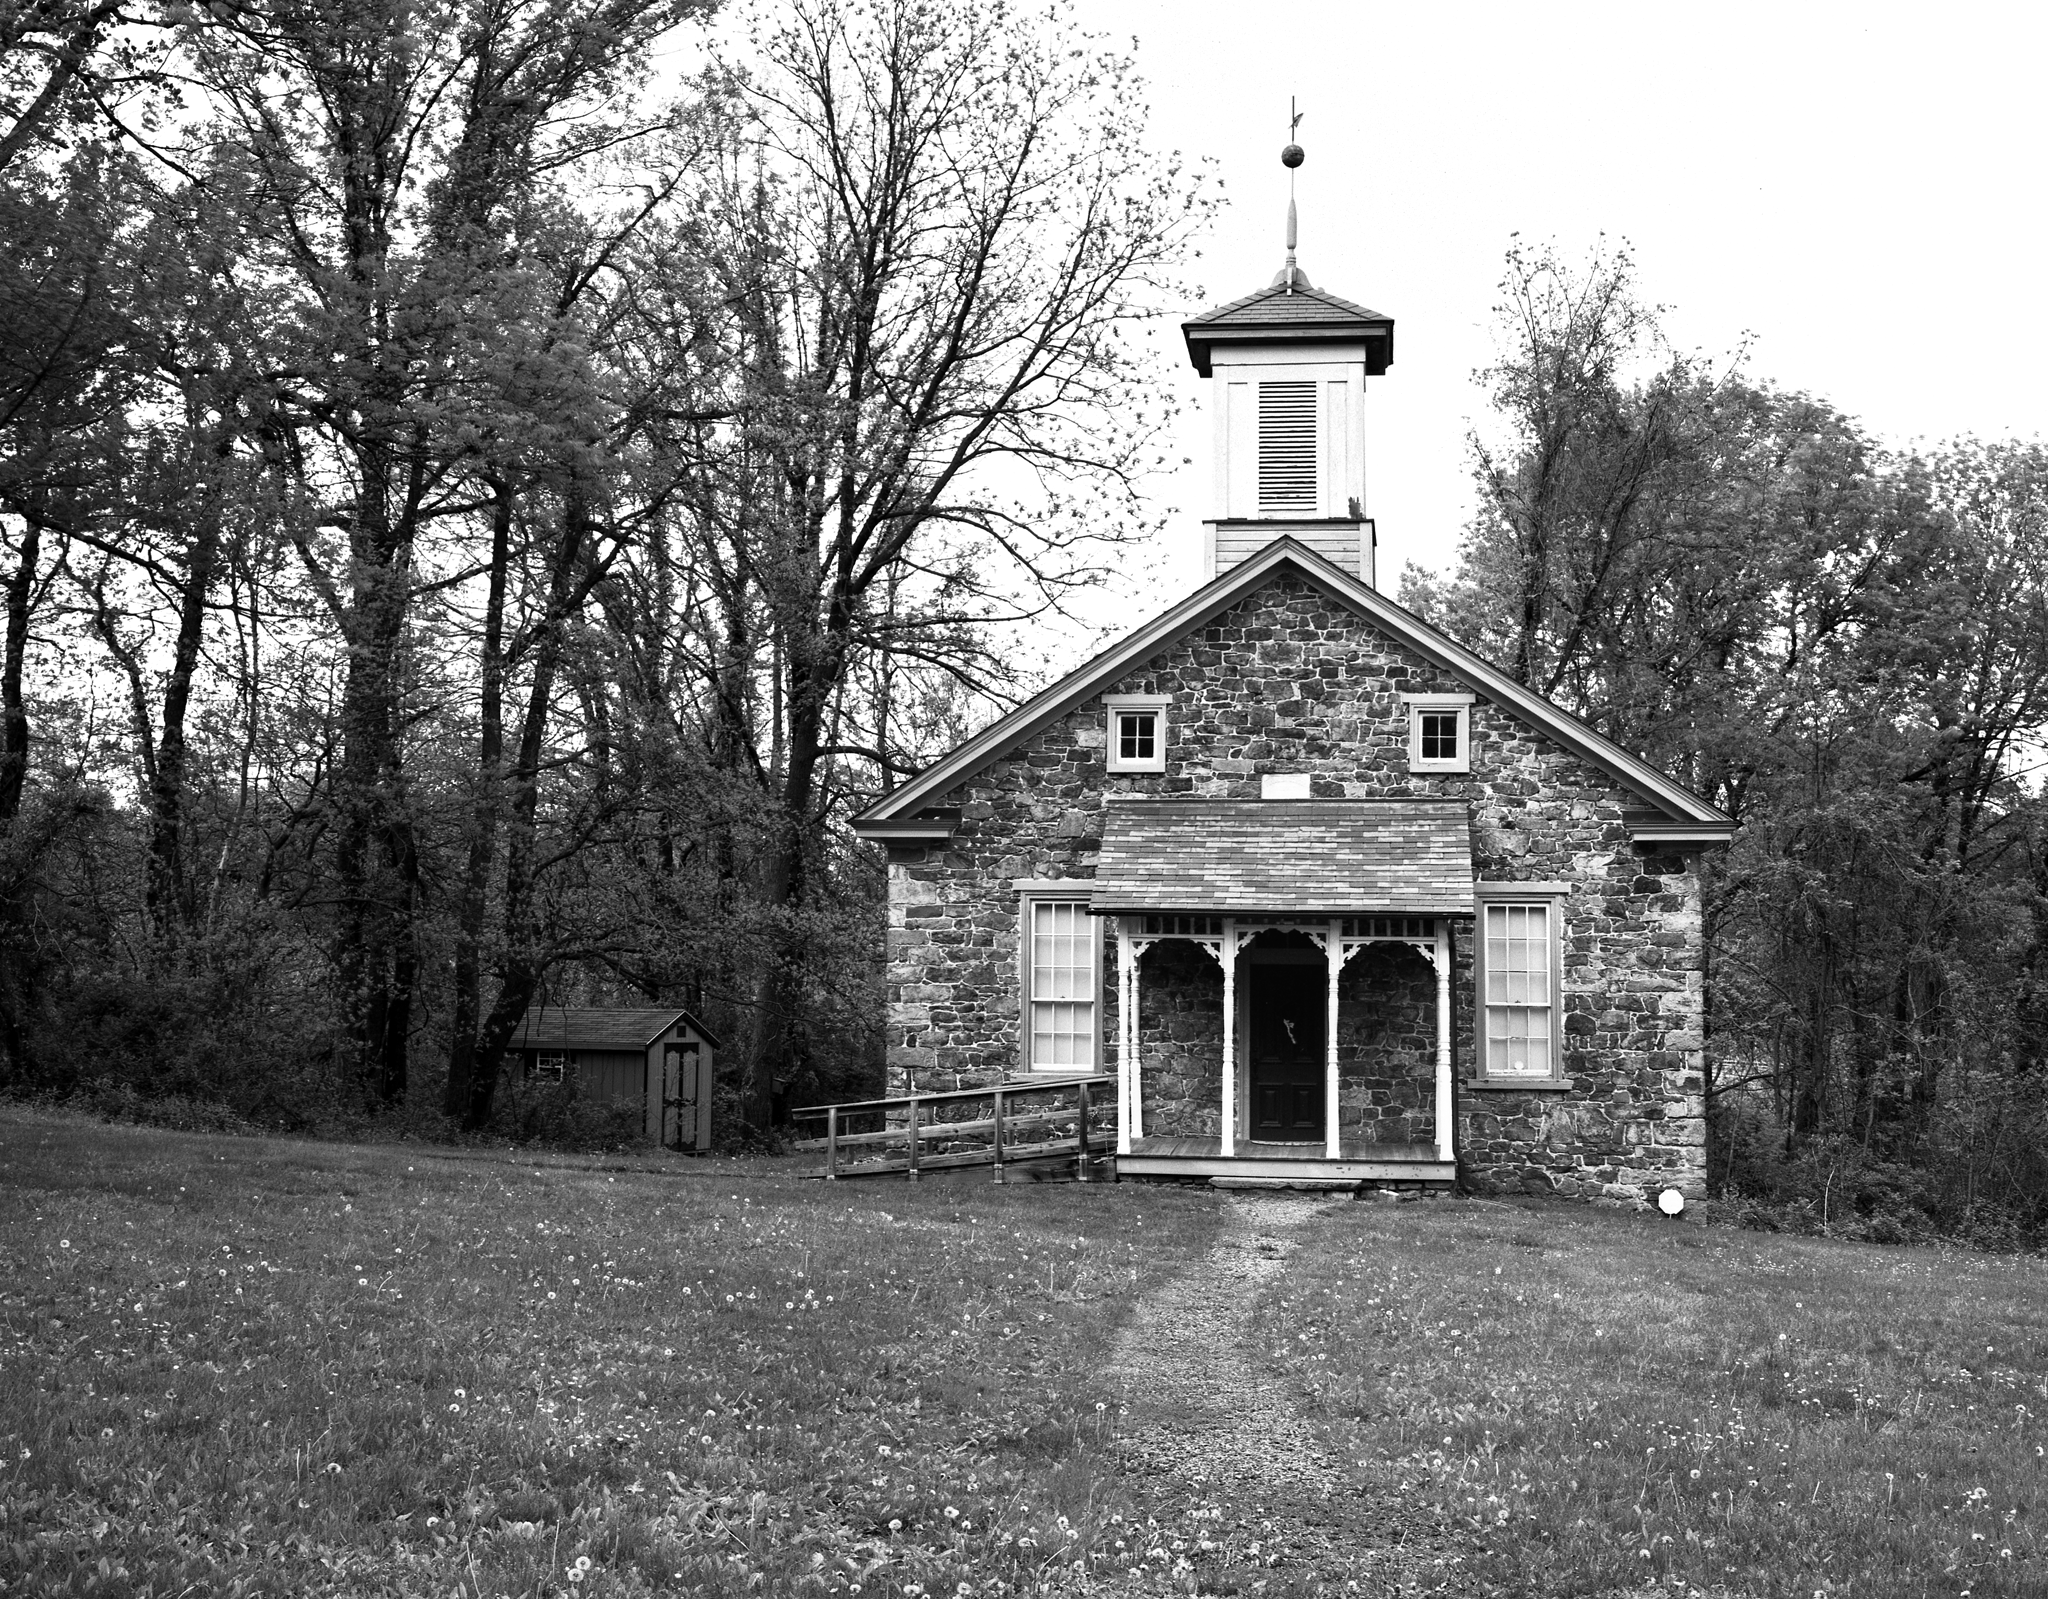 4x5_for_365_project_0148_Lutz-Franklin_School.png